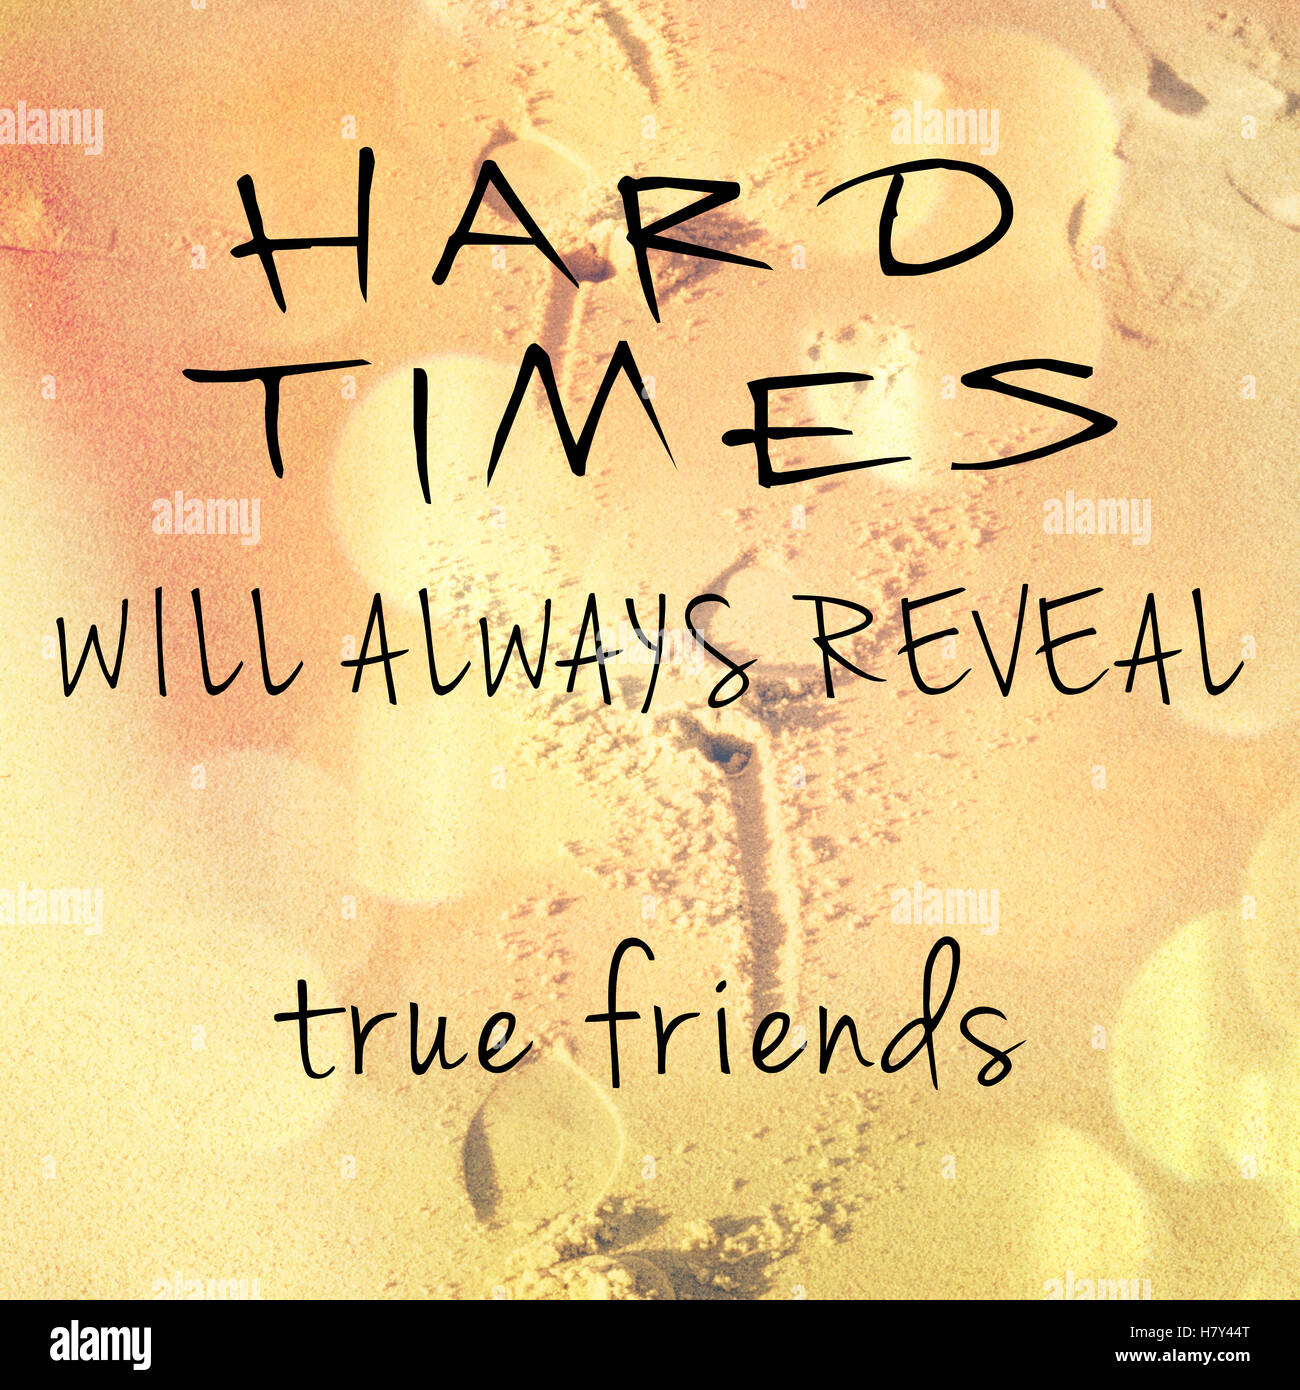 Inspirational typographic quote about friendship on blurred background - Stock Image